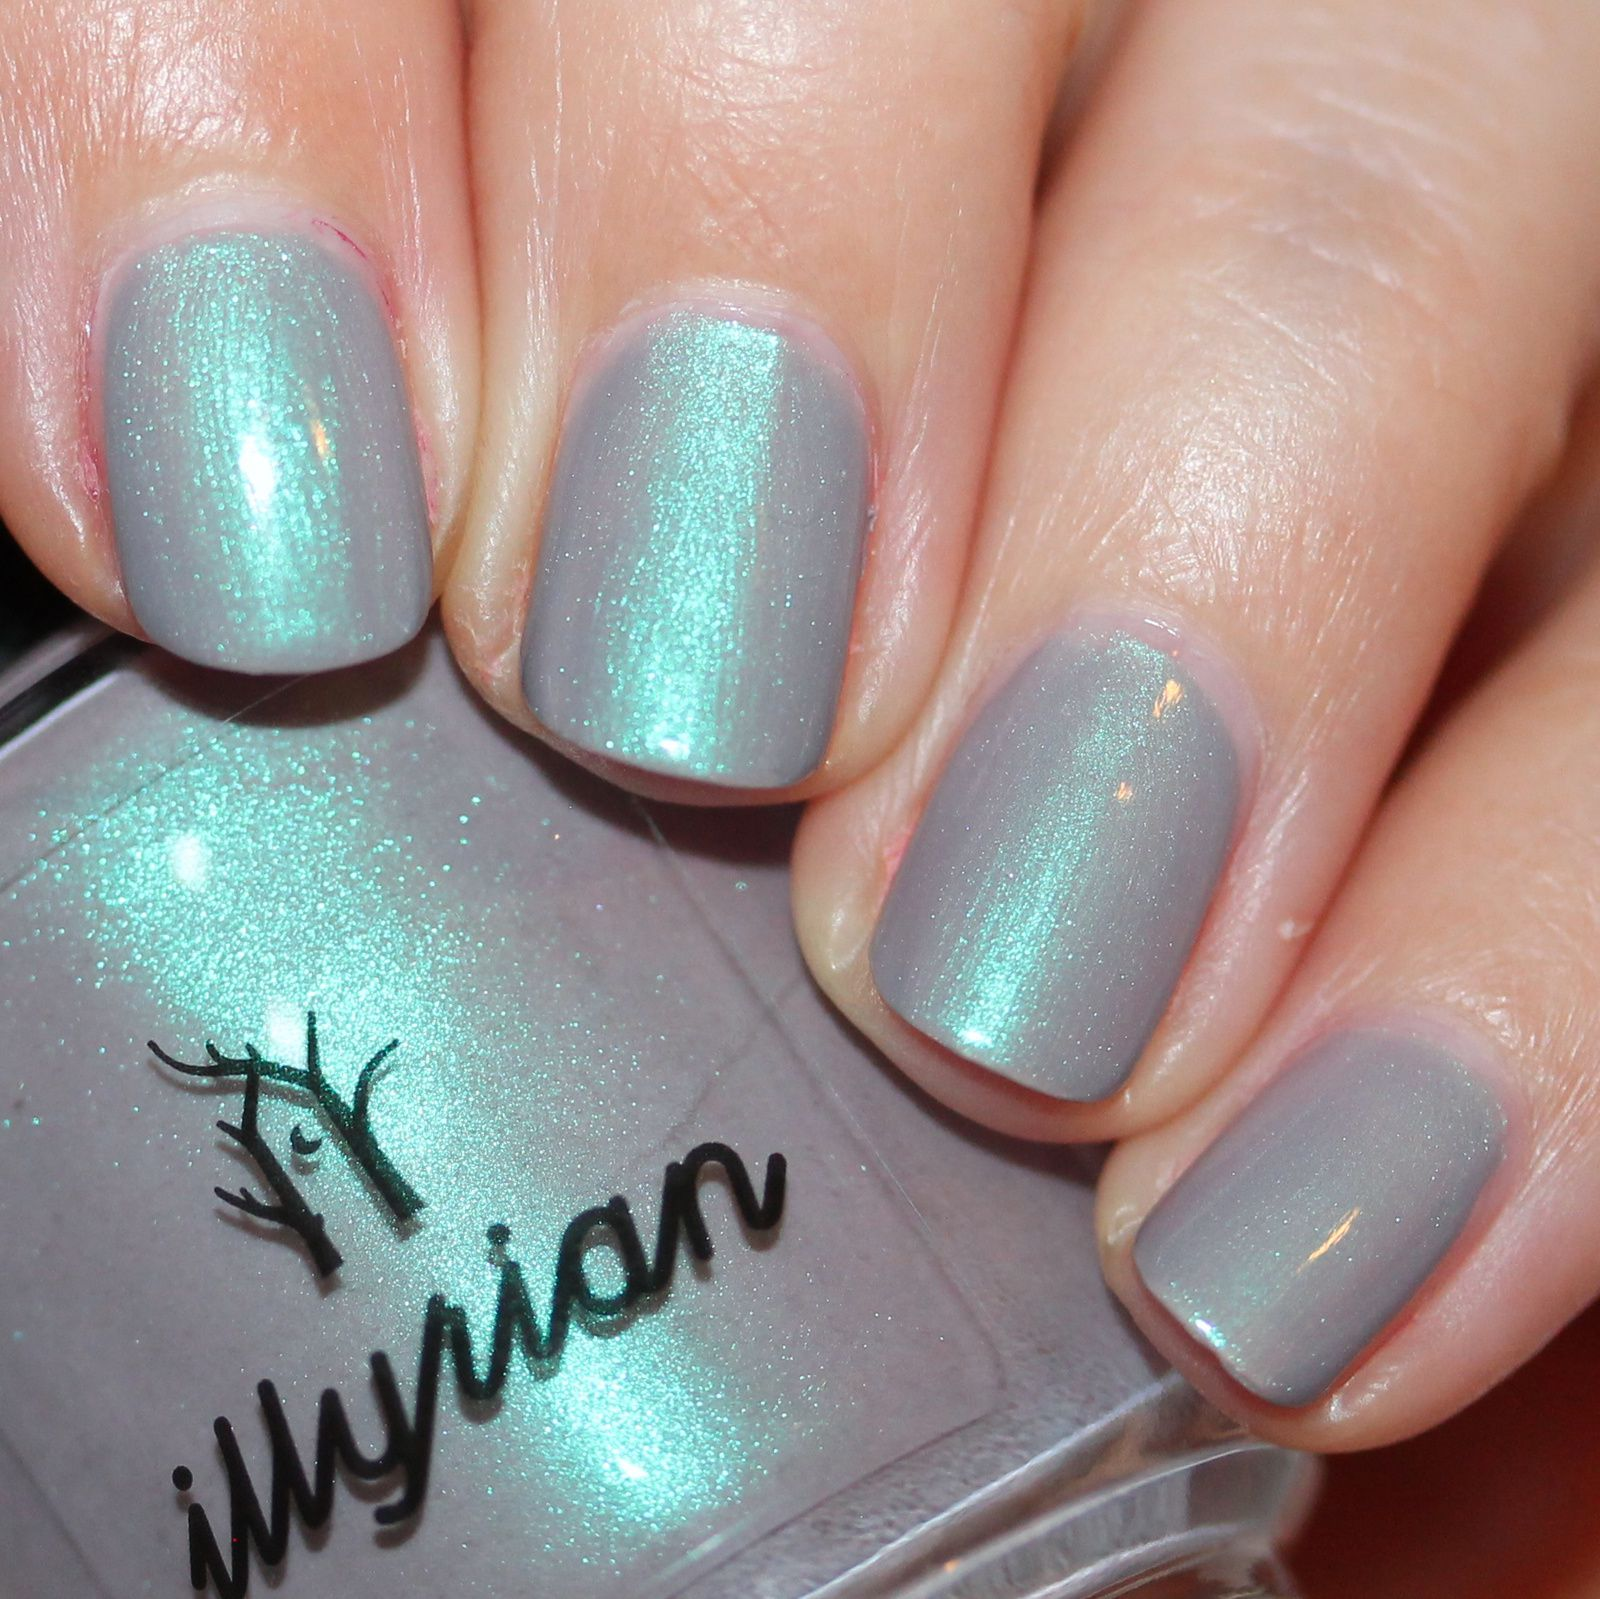 Illyrian Polish Dazed